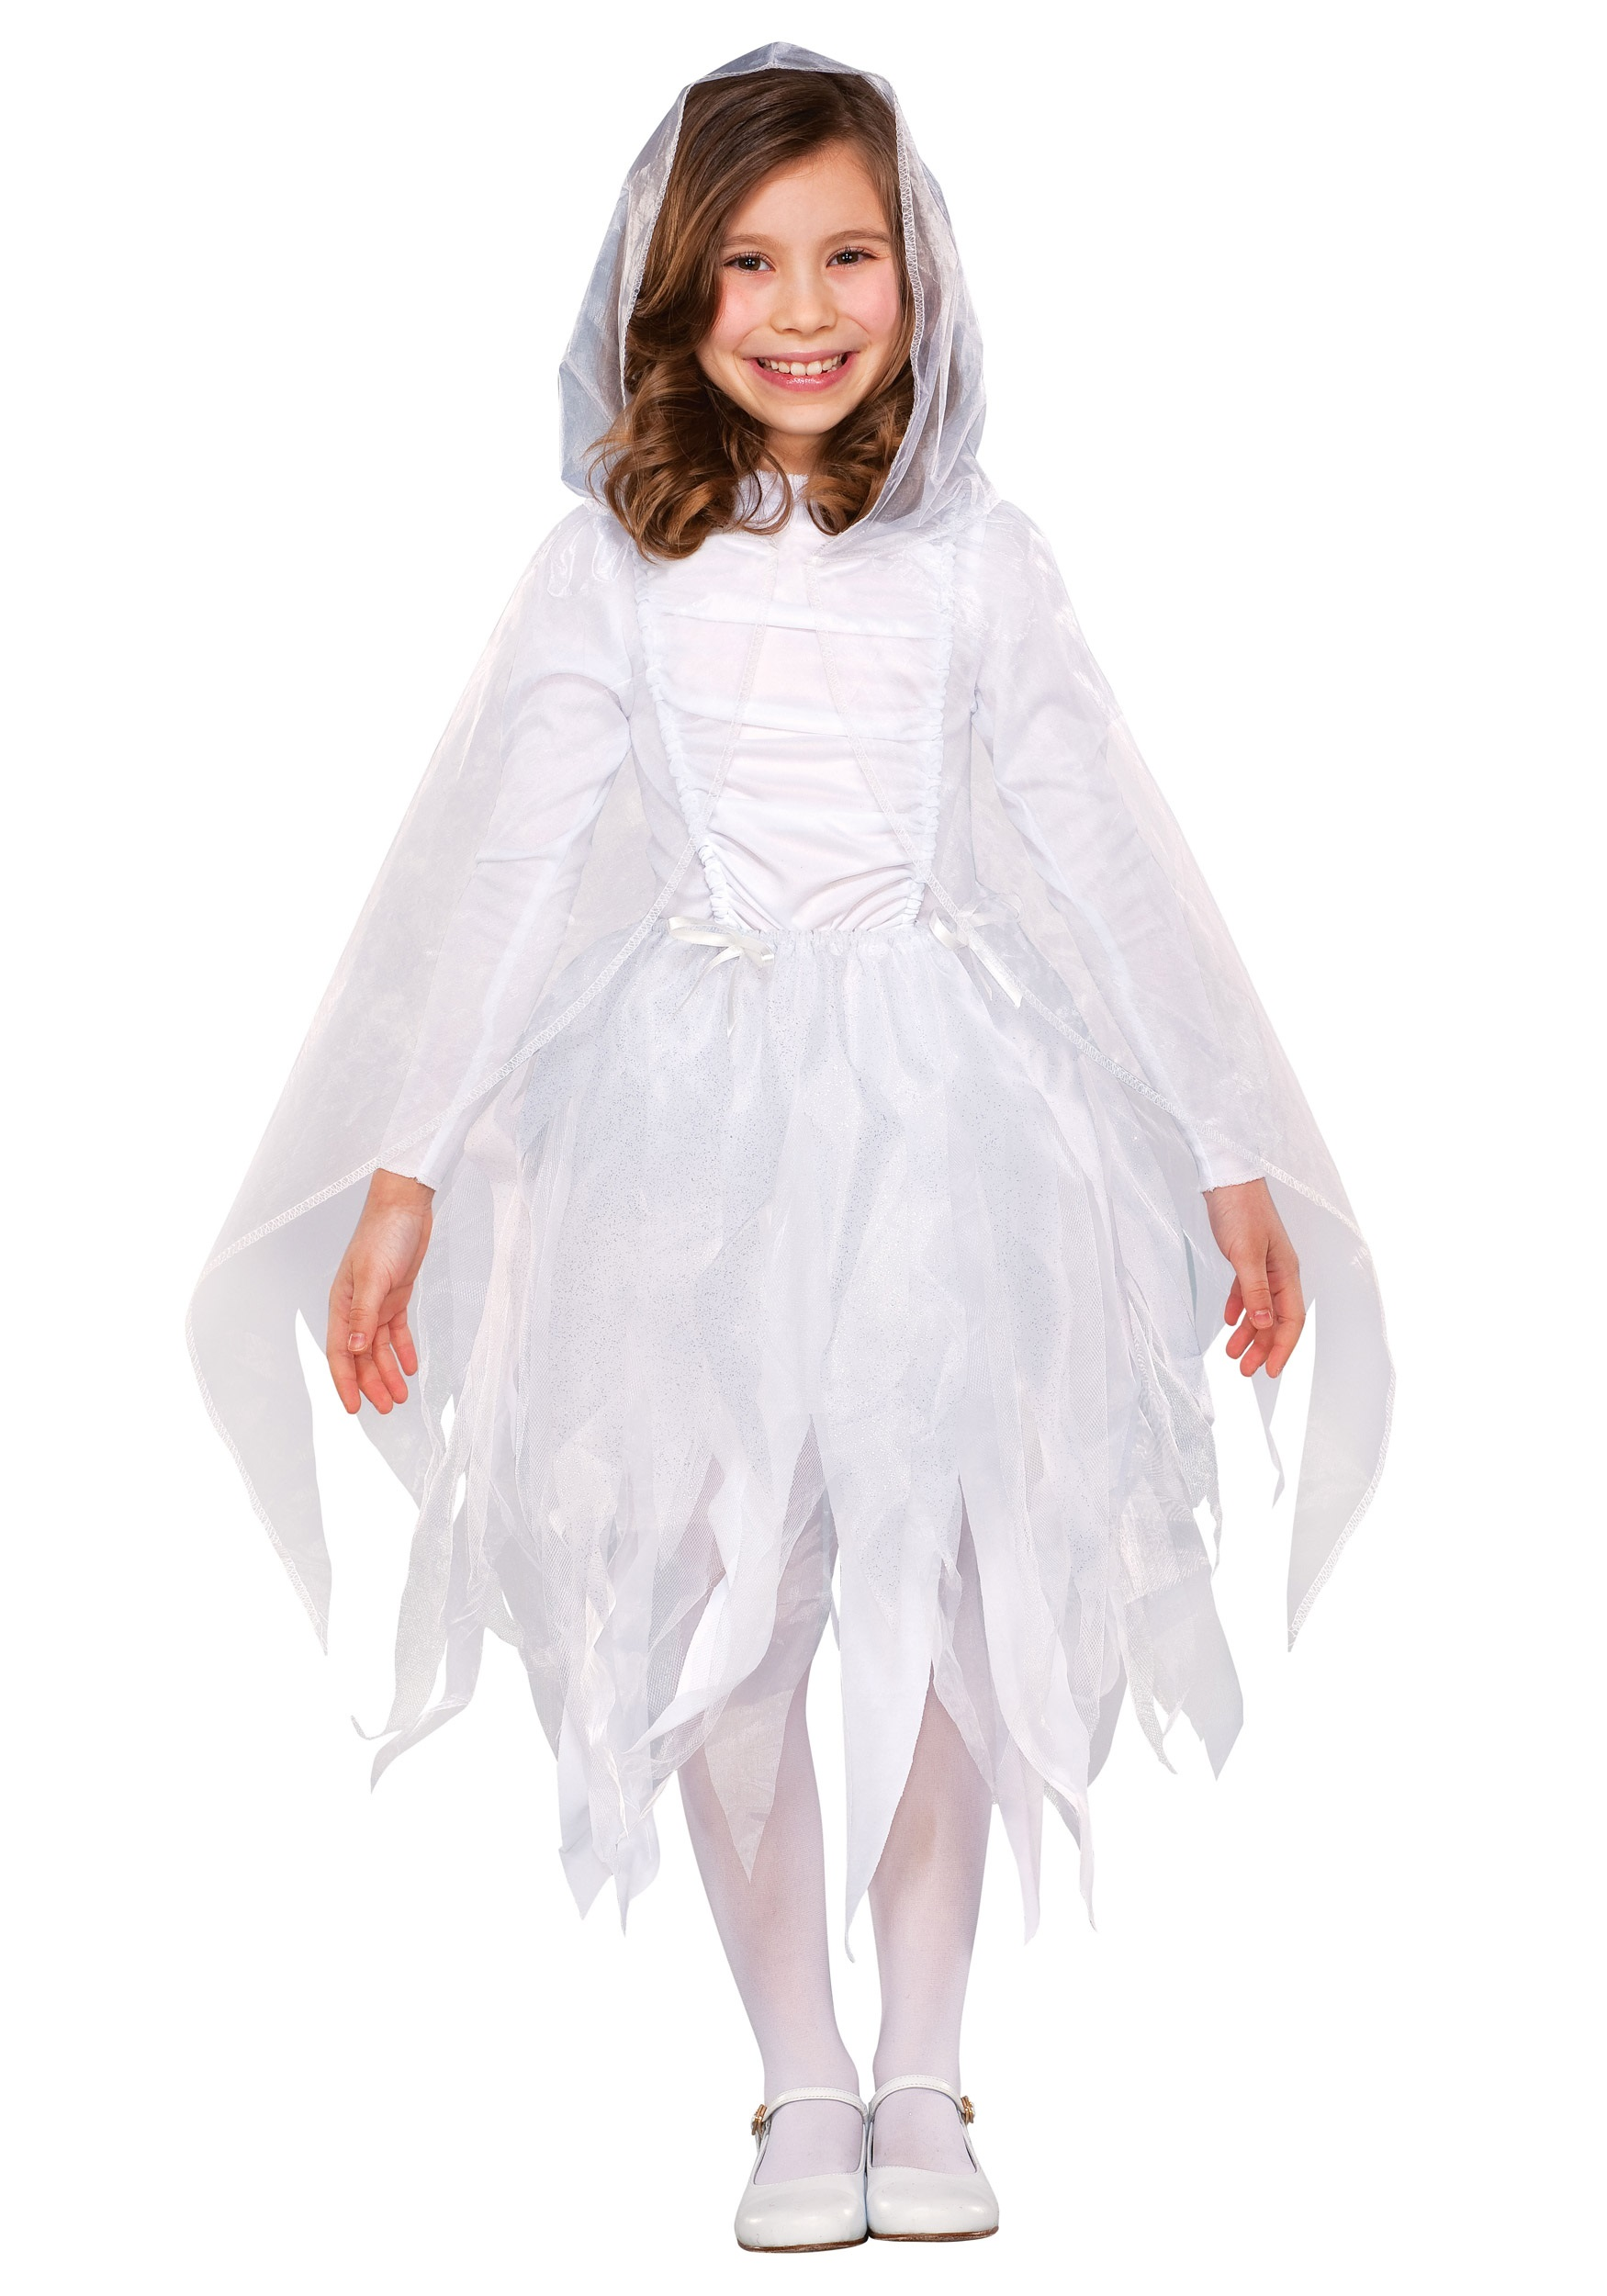 Girls Glimmer Ghost Costume  sc 1 st  Halloween Costumes & Girls Glimmer Ghost Costume - Halloween Costumes